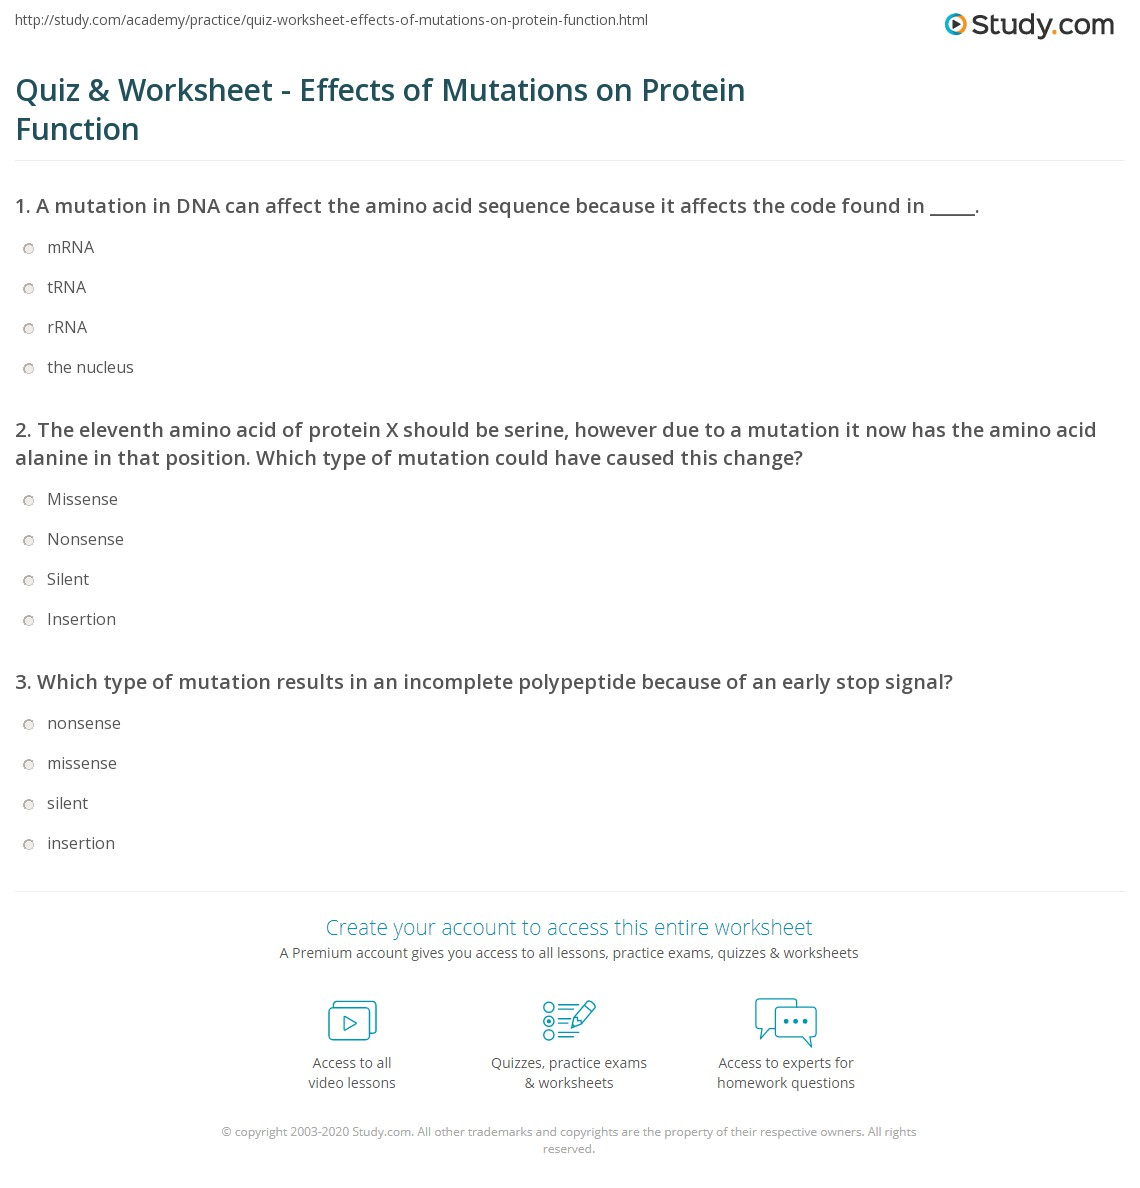 Worksheet Mutations Worksheet identifying mutations worksheet delwfg com quiz effects of on protein function